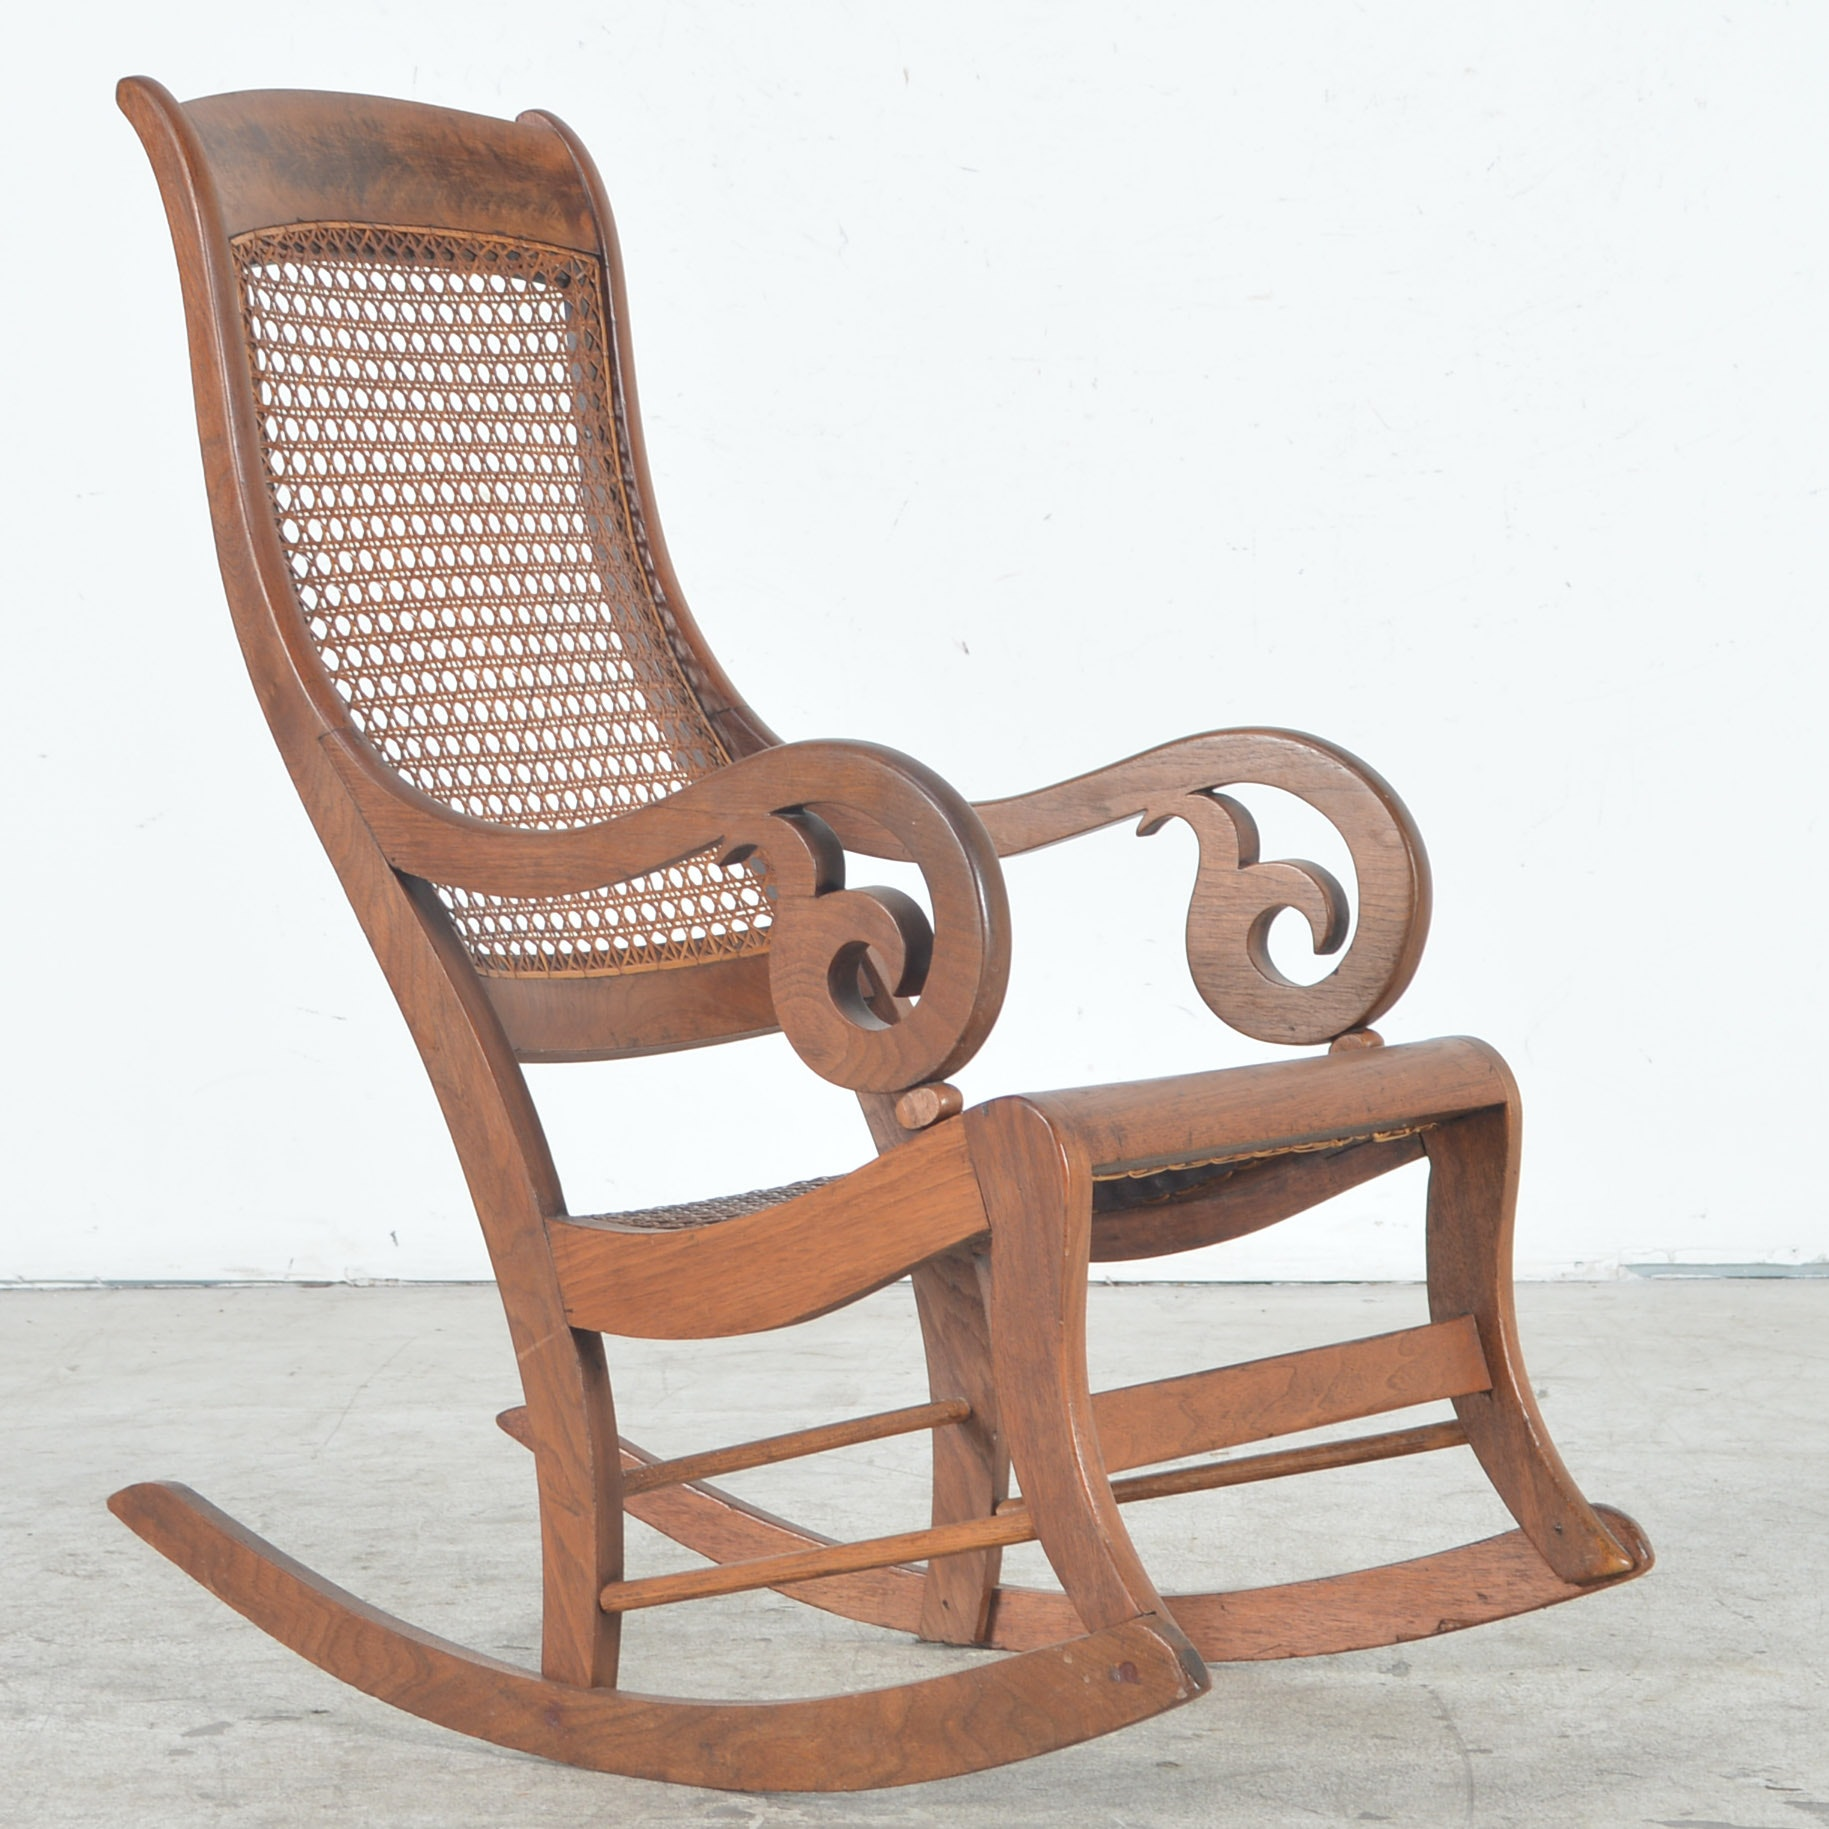 Etonnant Antique Rocking Chair With Cane Seat And Back ...